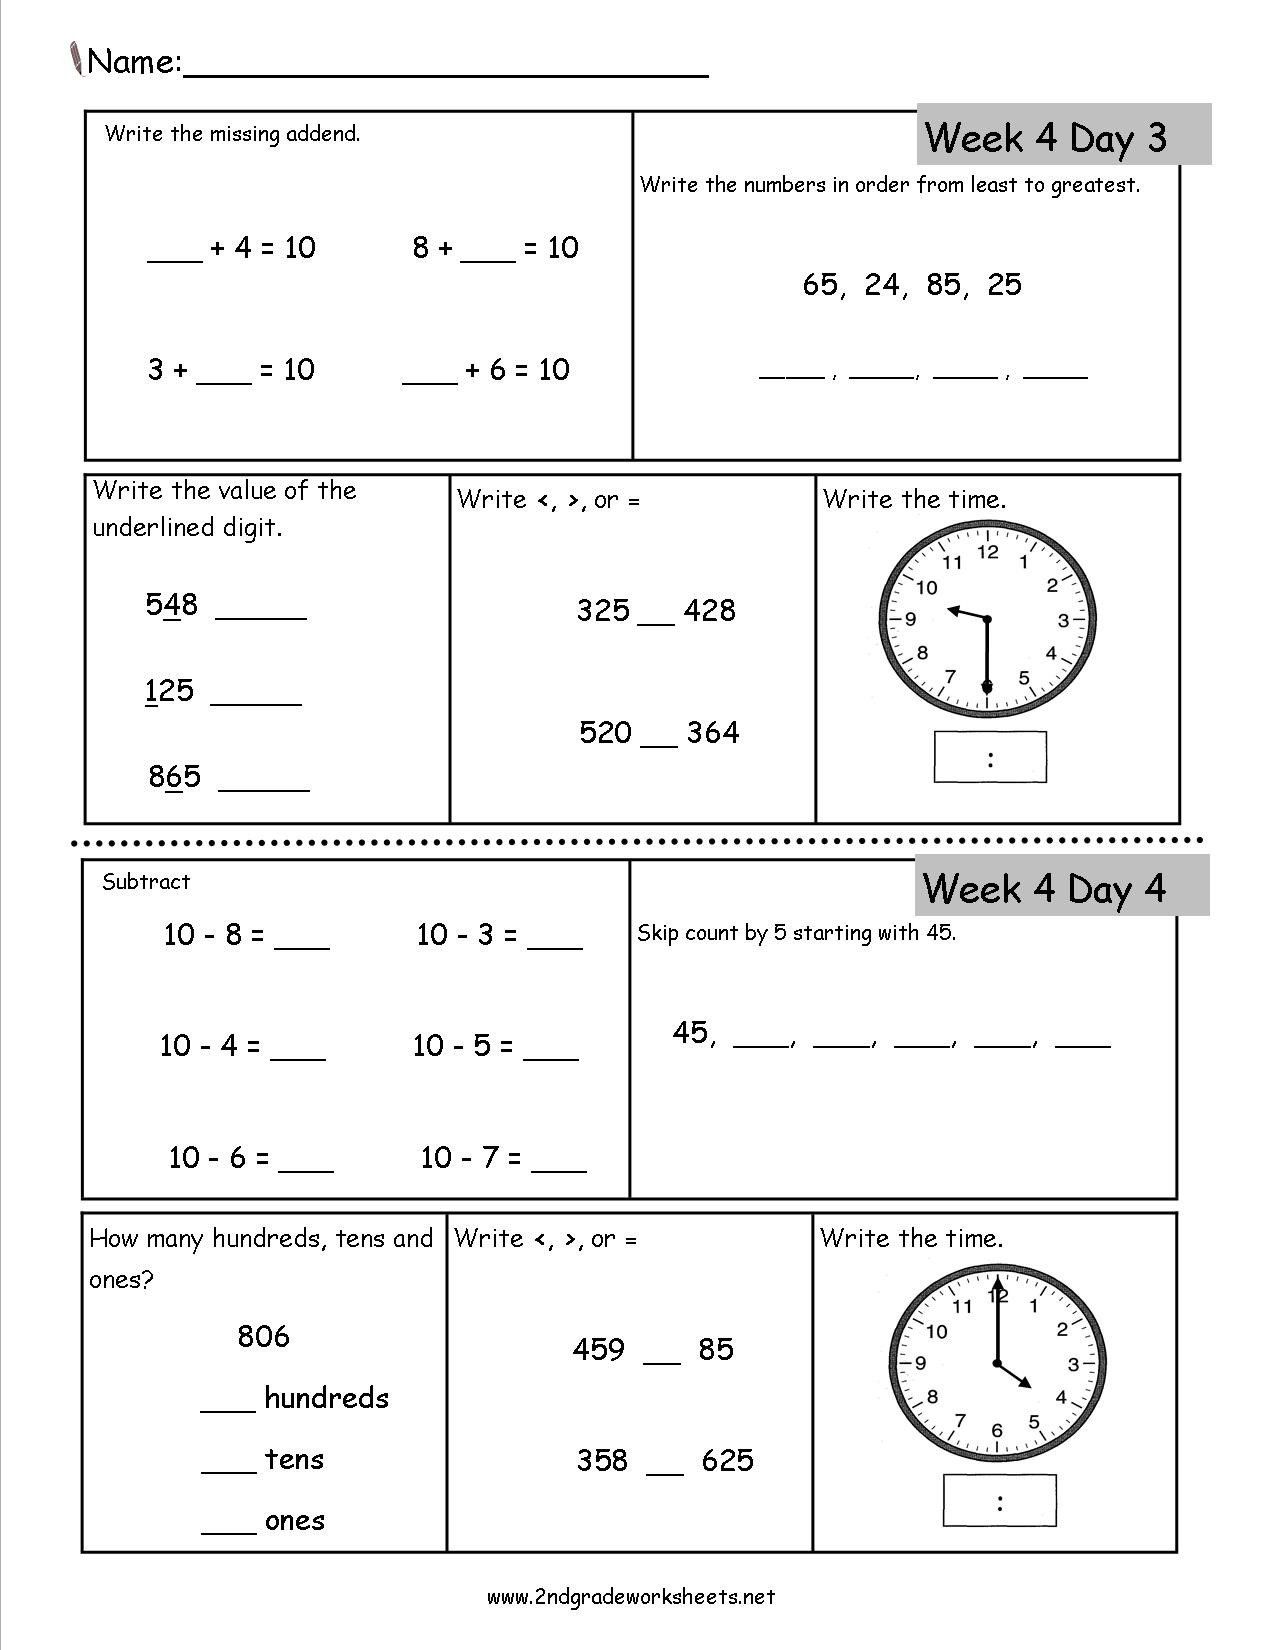 Dol 5th Grade Worksheet 2nd Grade Daily Math Worksheets Math Practice Worksheets 2nd Grade Math Worksheets Math Review Worksheets